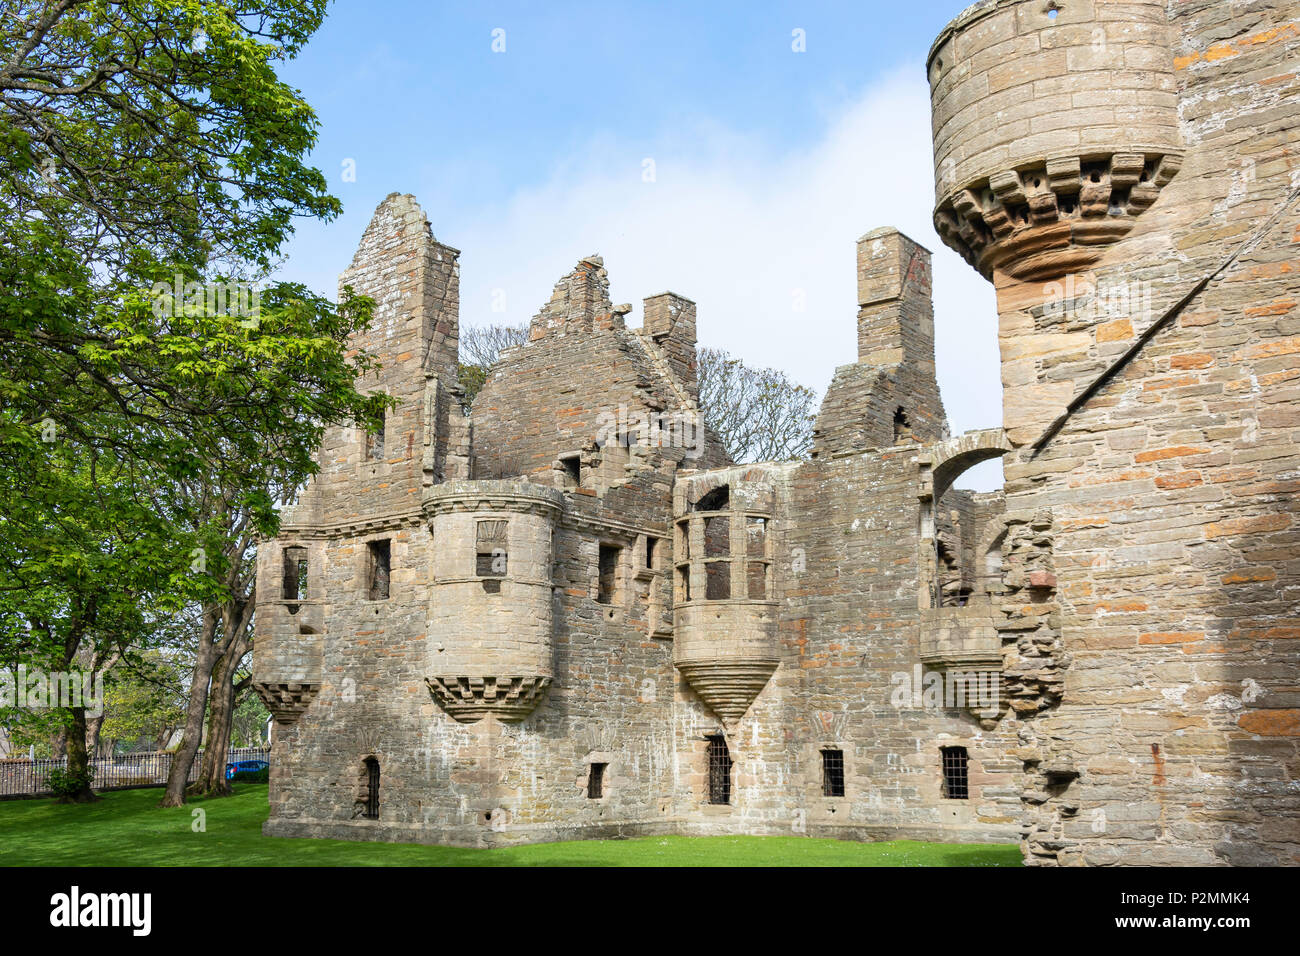 17th century Renaissance-style The Earl's Palace,  Watergate, Kirkwall, Mainland, Orkney Islands, Northern Isles, Scotland, United Kingdom - Stock Image